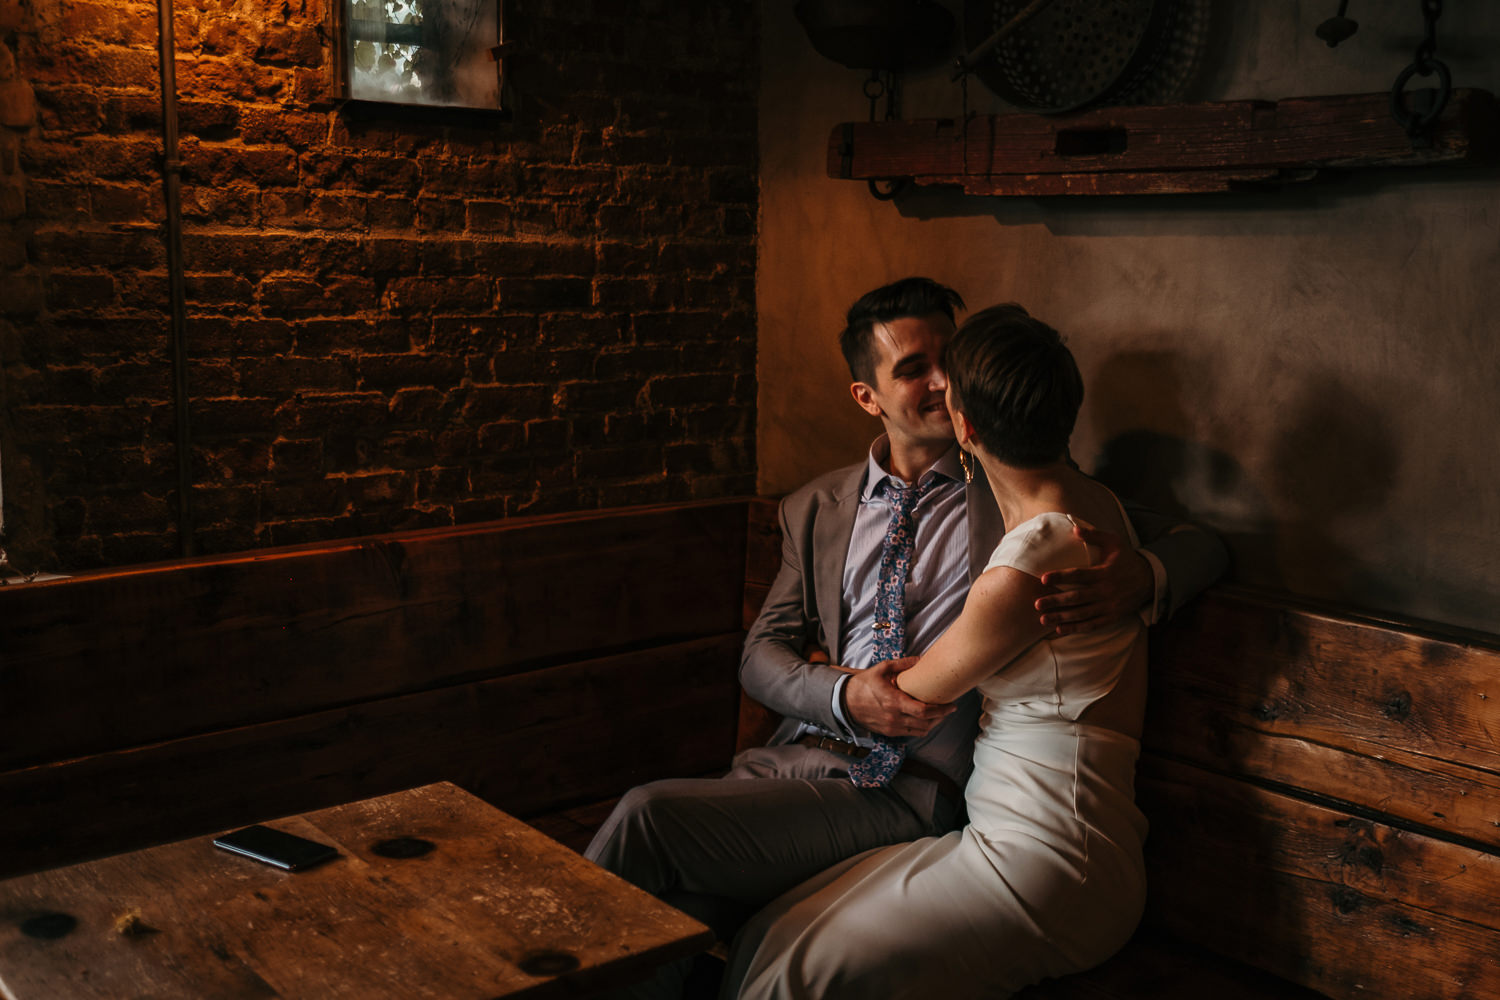 moody lighting room corner brick and concrete wall newlyweds sitting and hugging